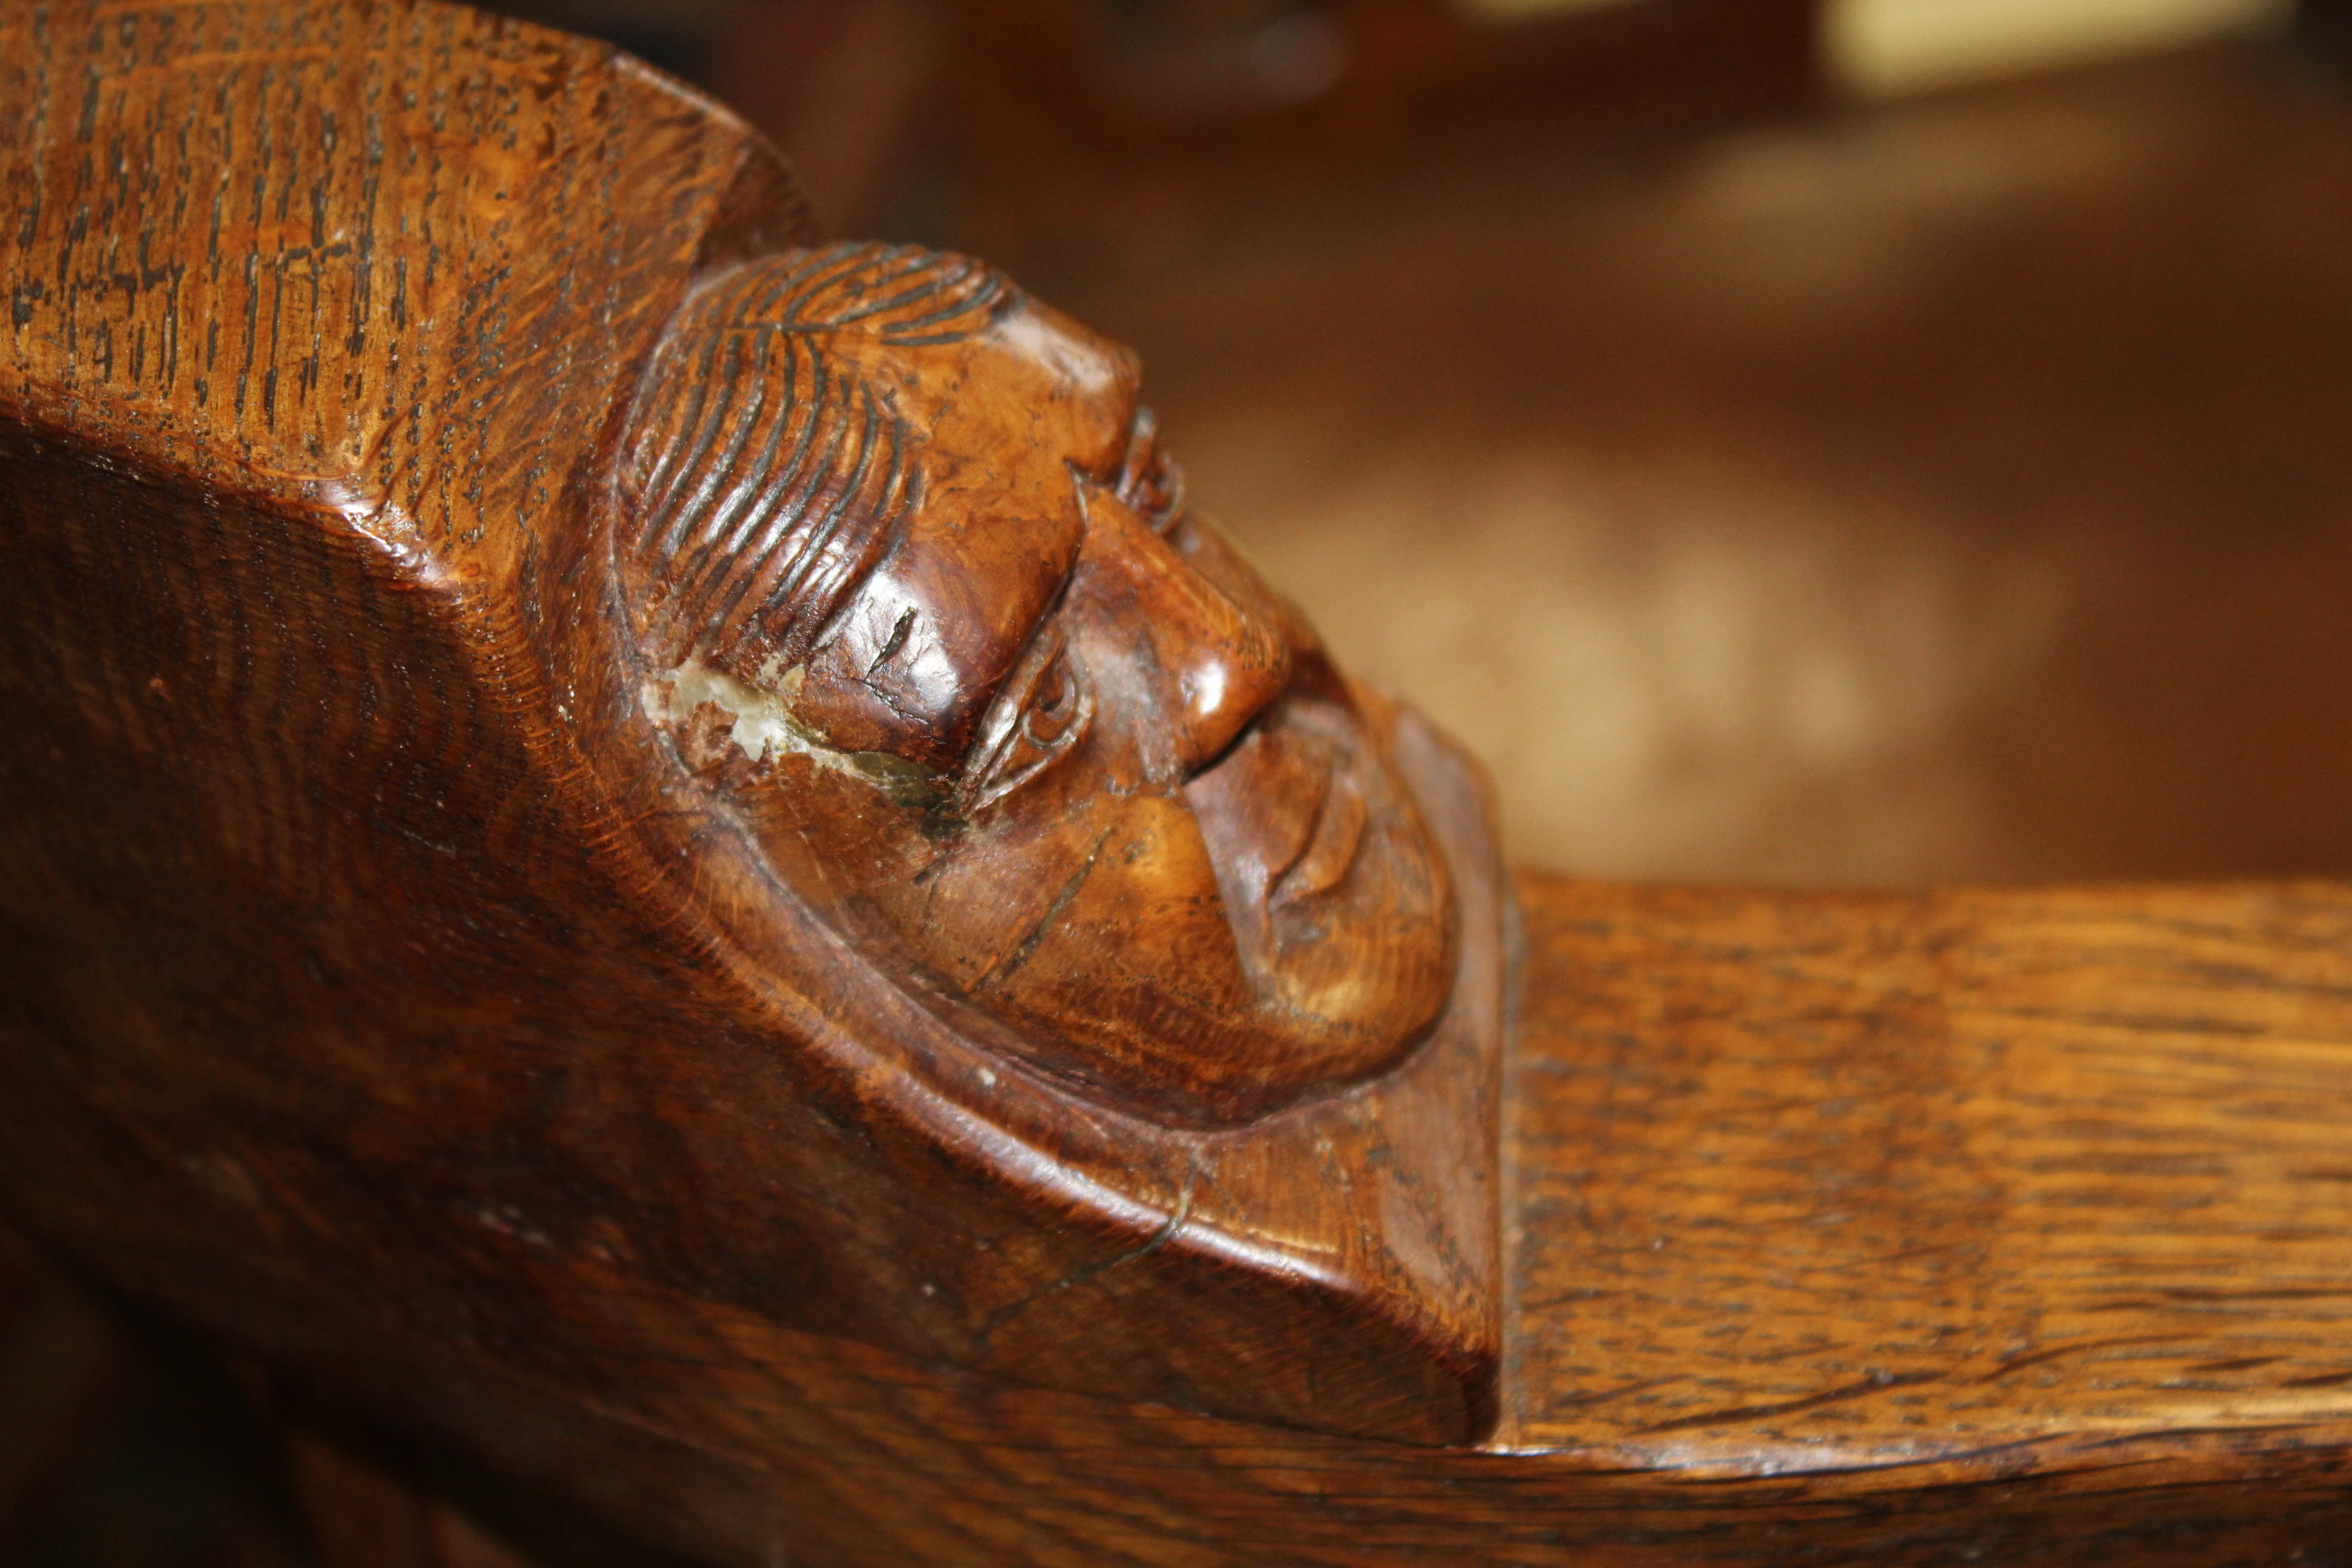 ROBERT THOMPSON OF KILBURN - MOUSEMAN MONKS CHAIR a circa 1920s/1930s oak Monk's armchair with a - Image 26 of 27